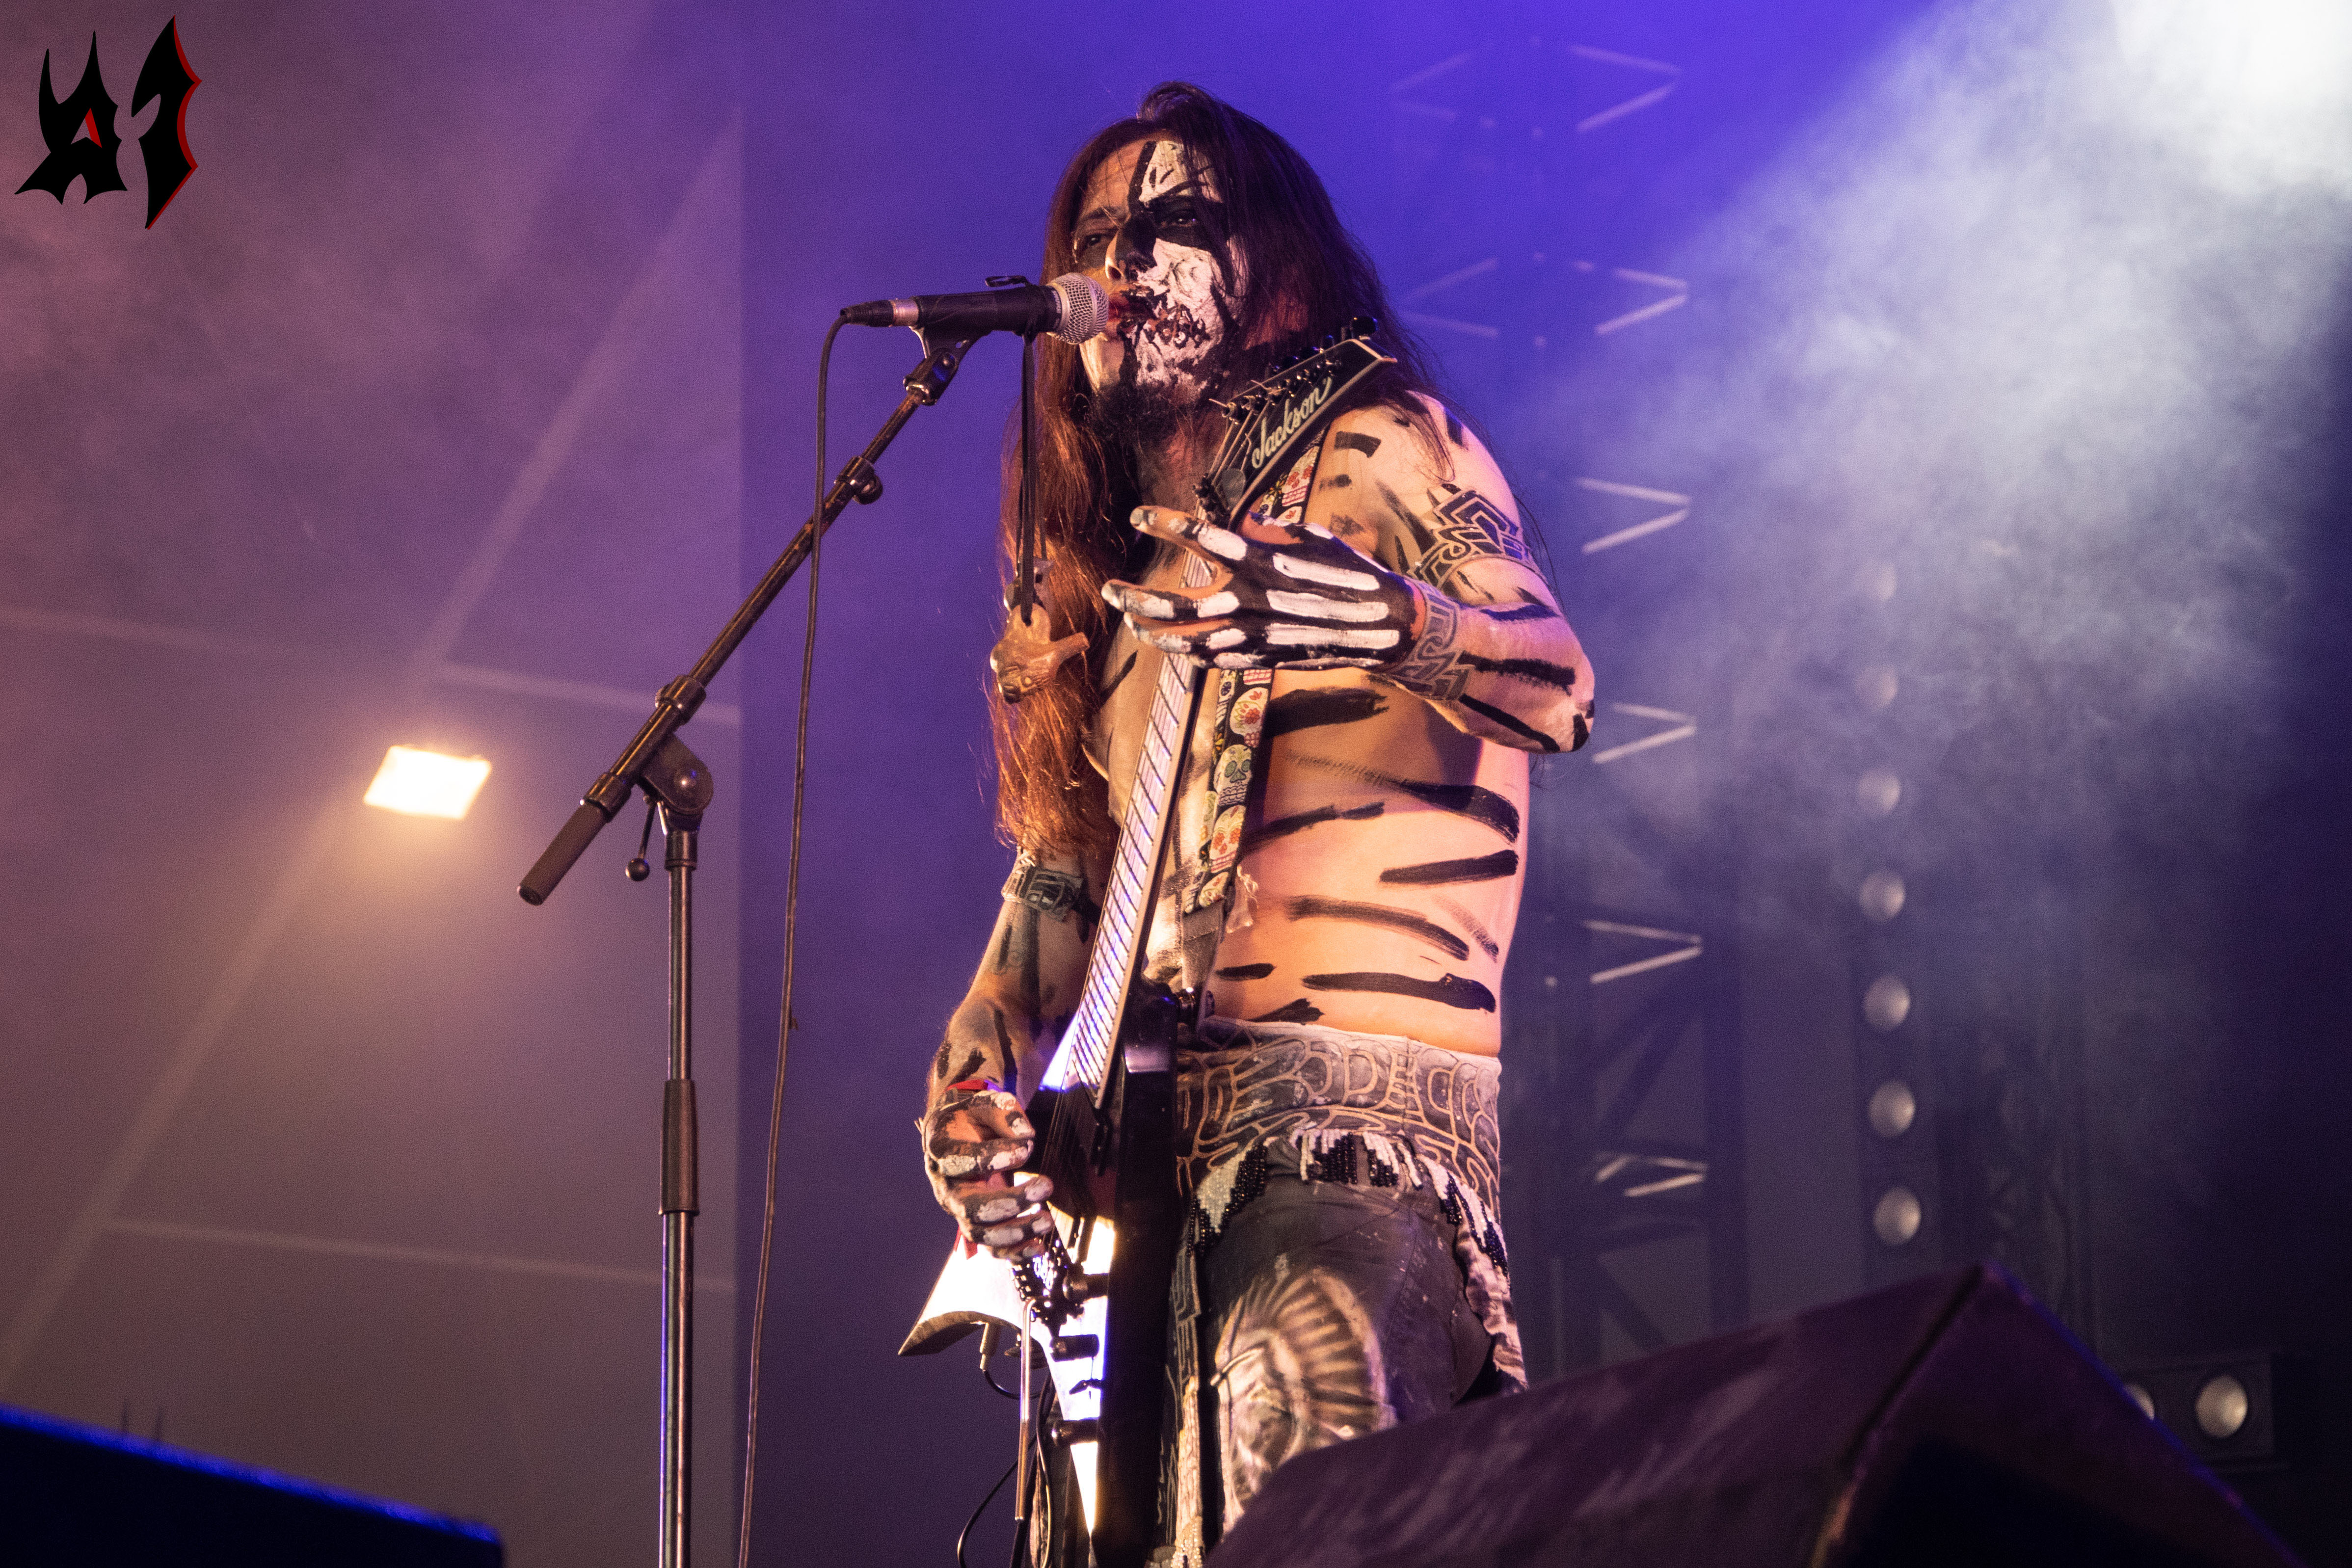 Hellfest - Cemican - 6